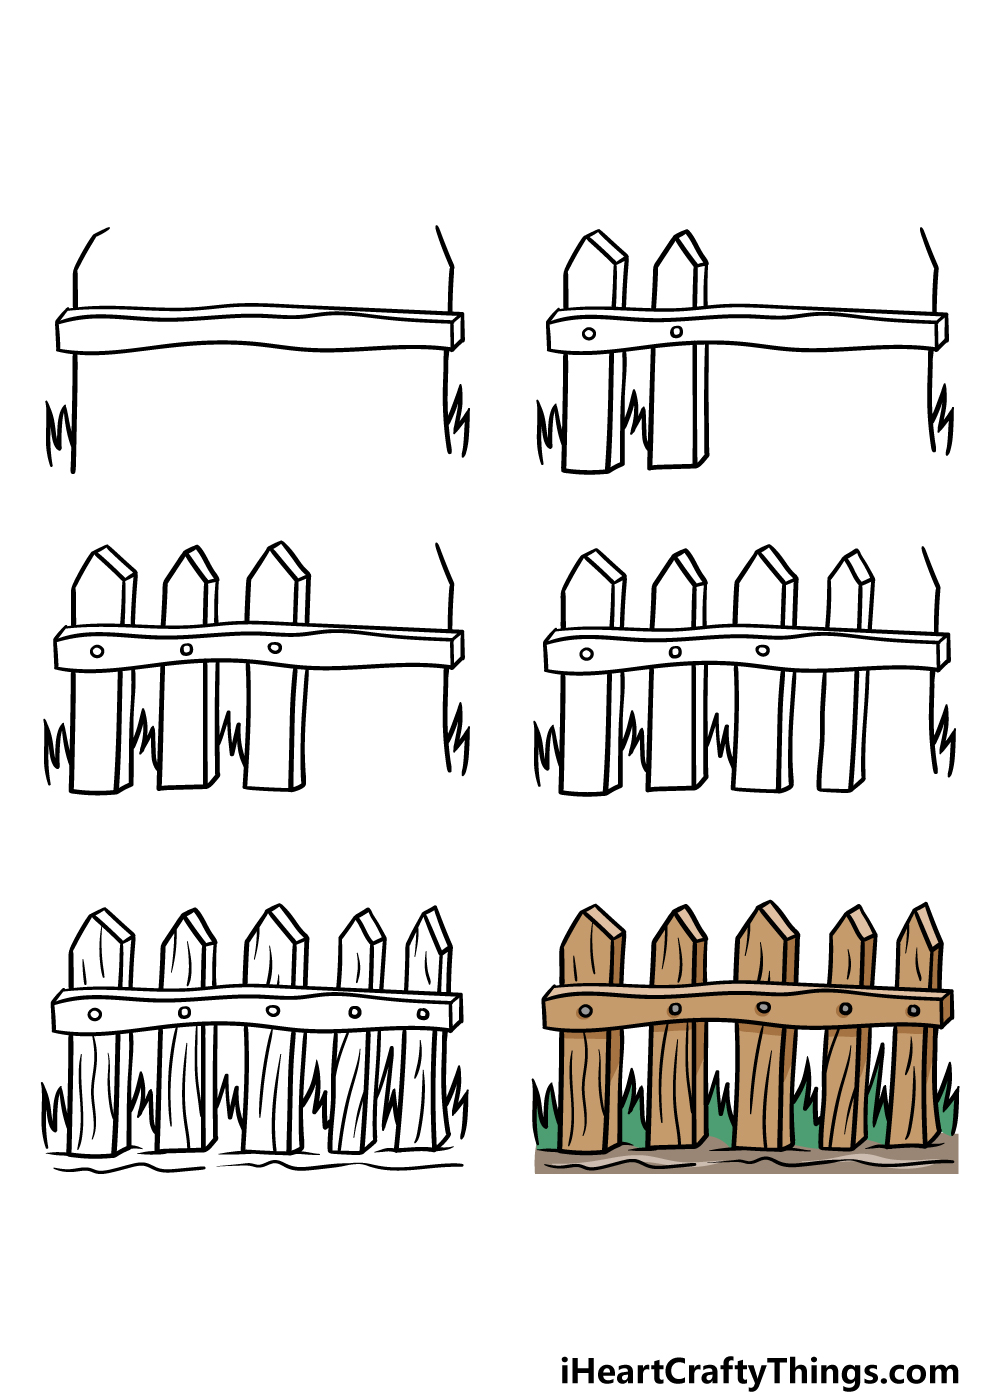 how to draw a fence in 6 steps